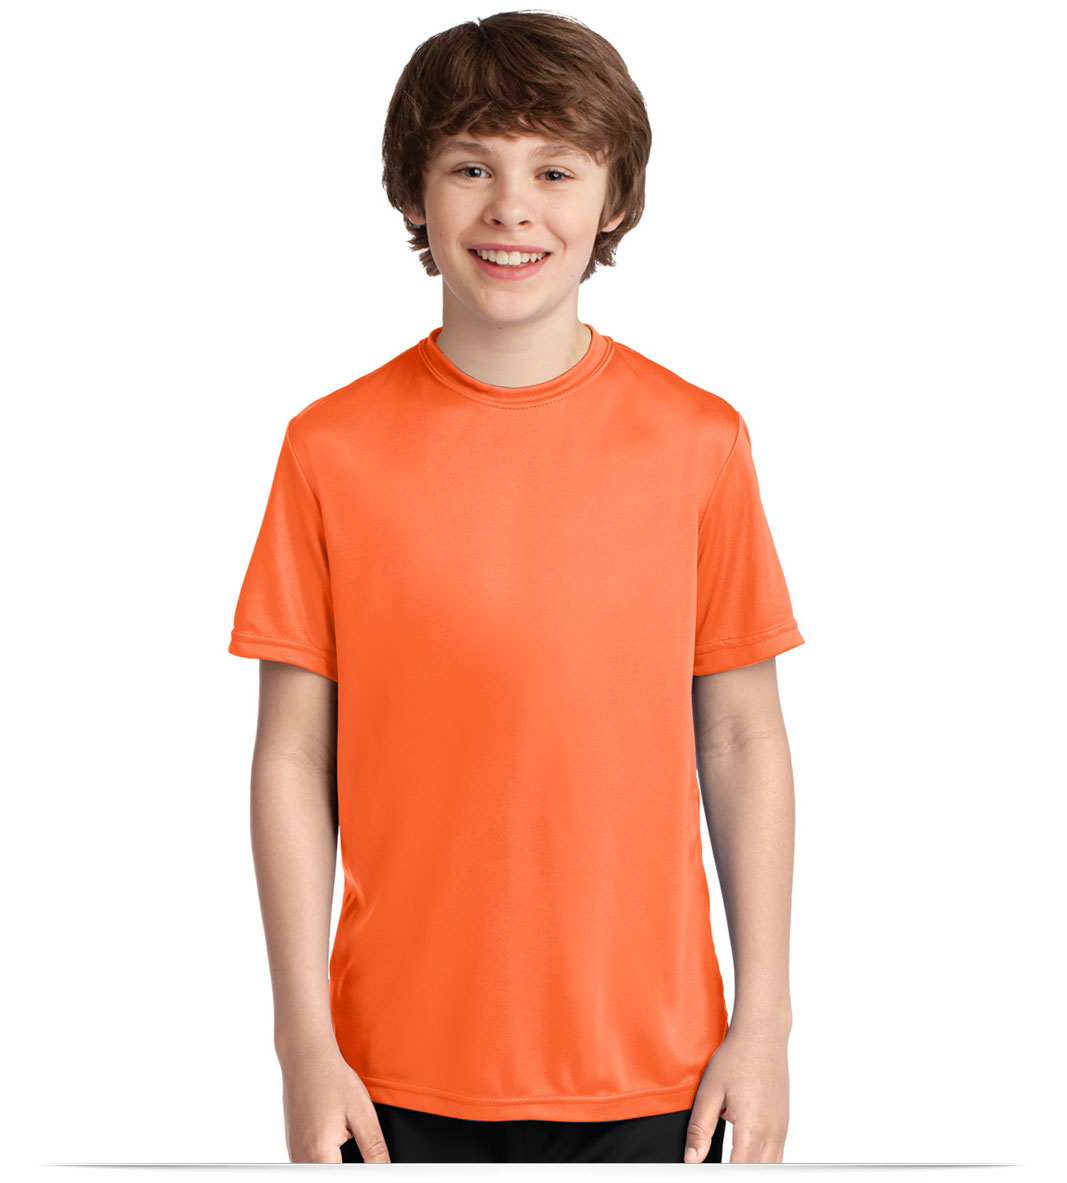 Personalized Port and Company Youth Essential Performance Tee